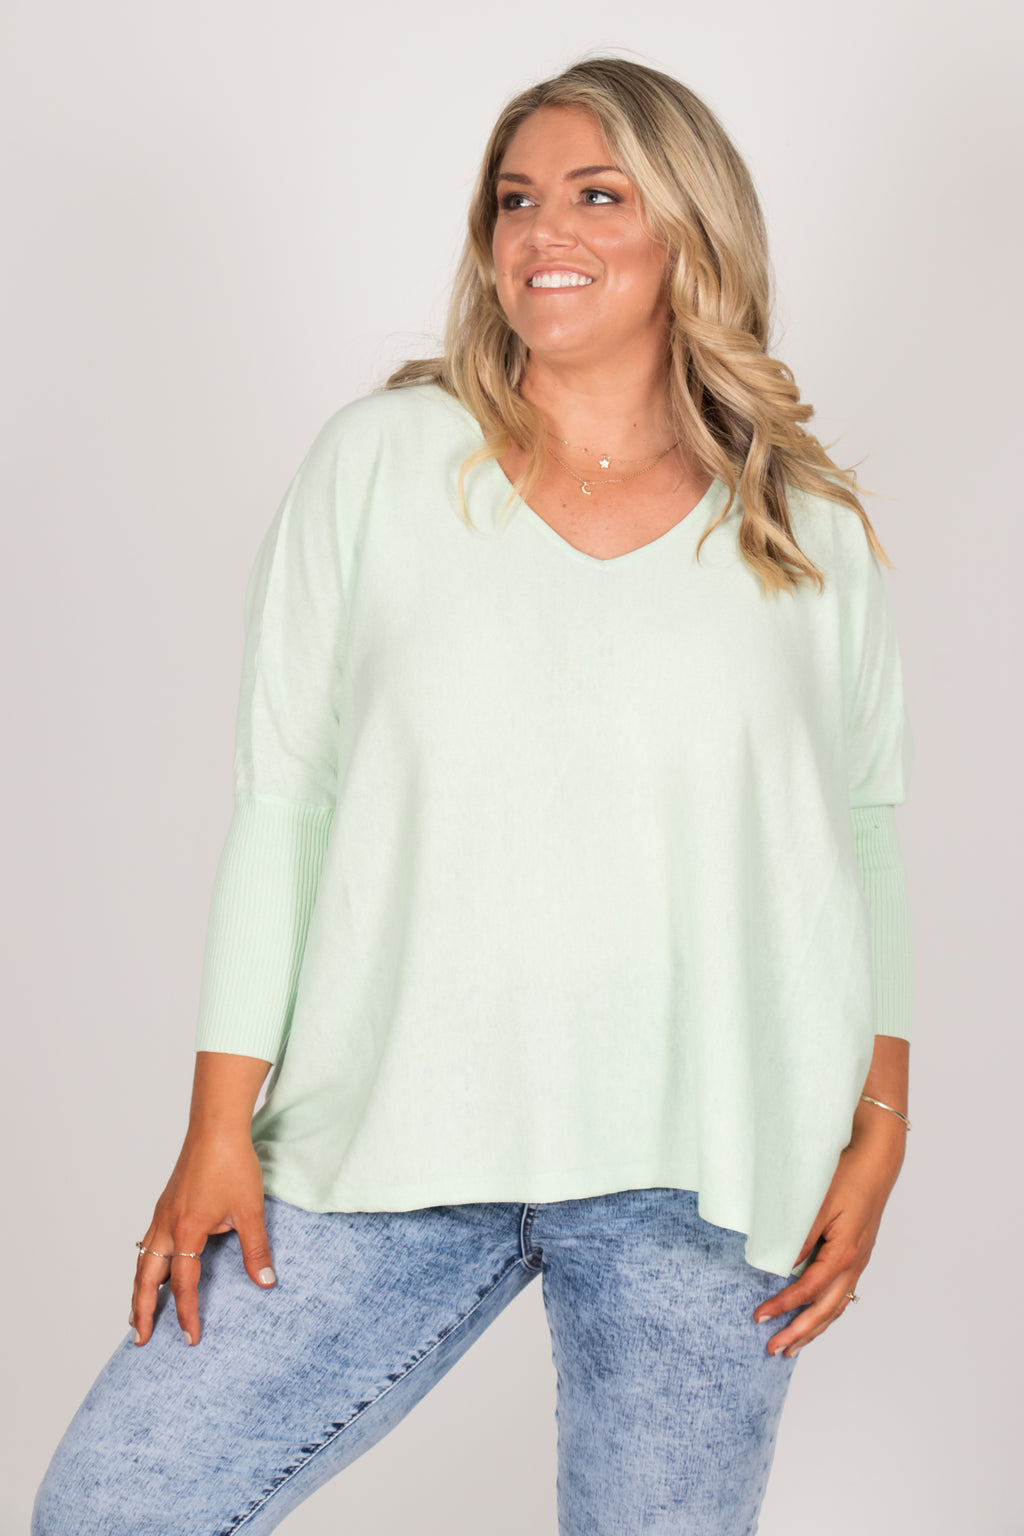 Delia Knit Top in Mint